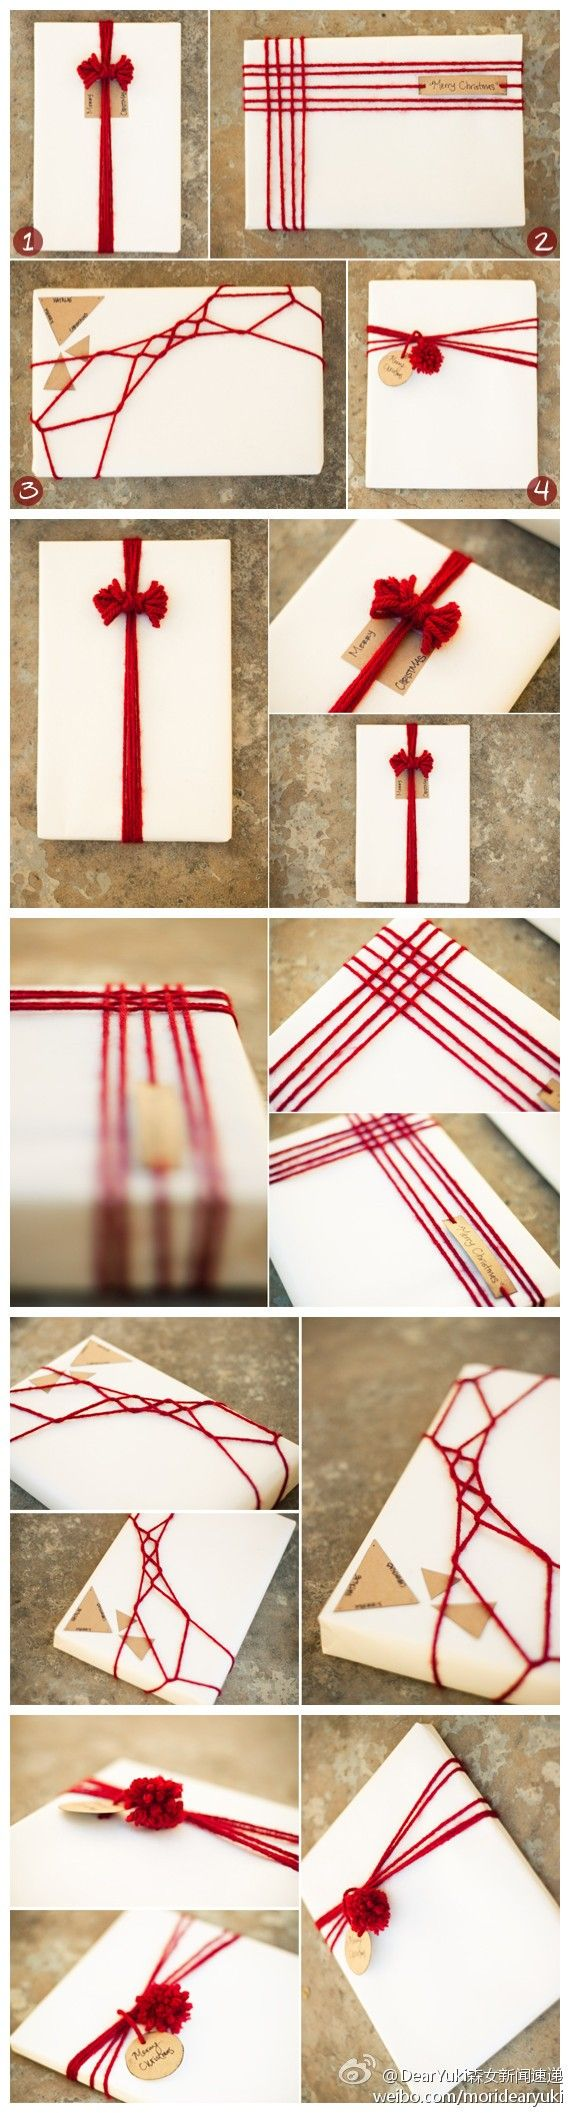 Fun ways of wrapping presents.